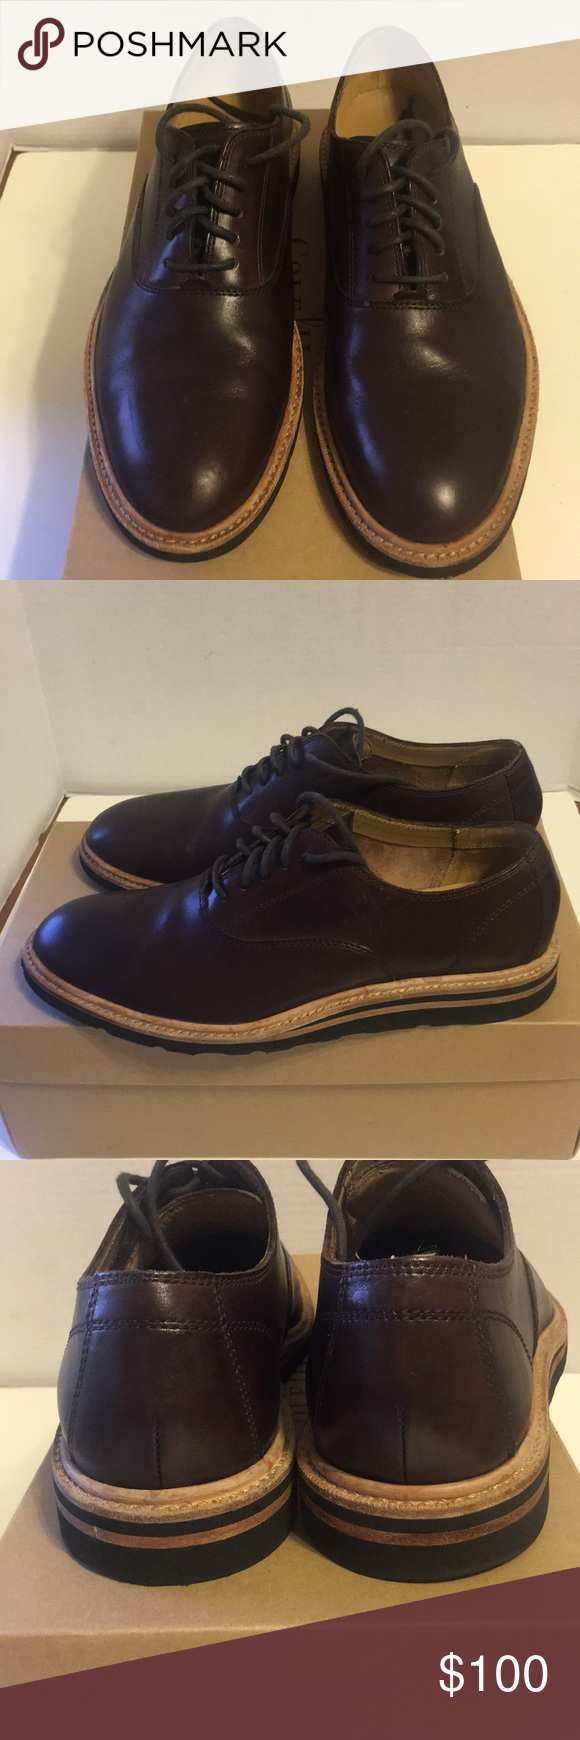 Cole Haan Men's Shoe sz 7.5M